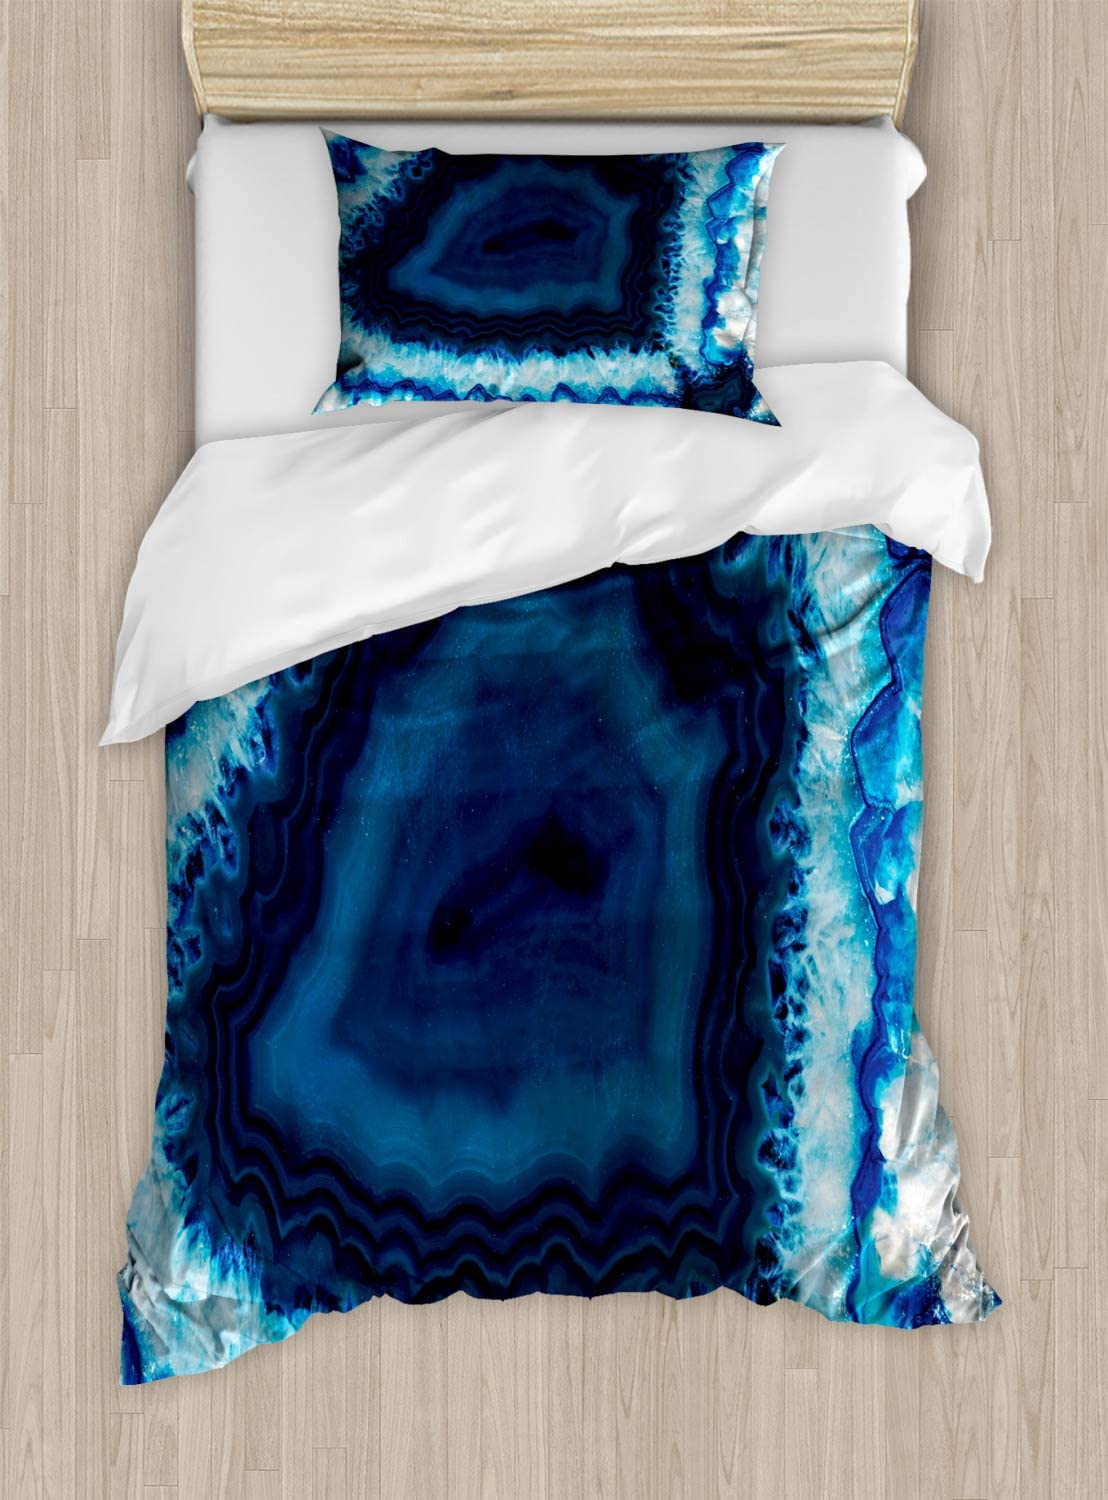 Lunarable Agate Duvet Cover Set, Slice Detail Macro of Agate Geode Known as Brazilian Thunder Egg, Decorative 2 Piece Bedding Set with 1 Pillow Sham, Twin Size, Blue Navy